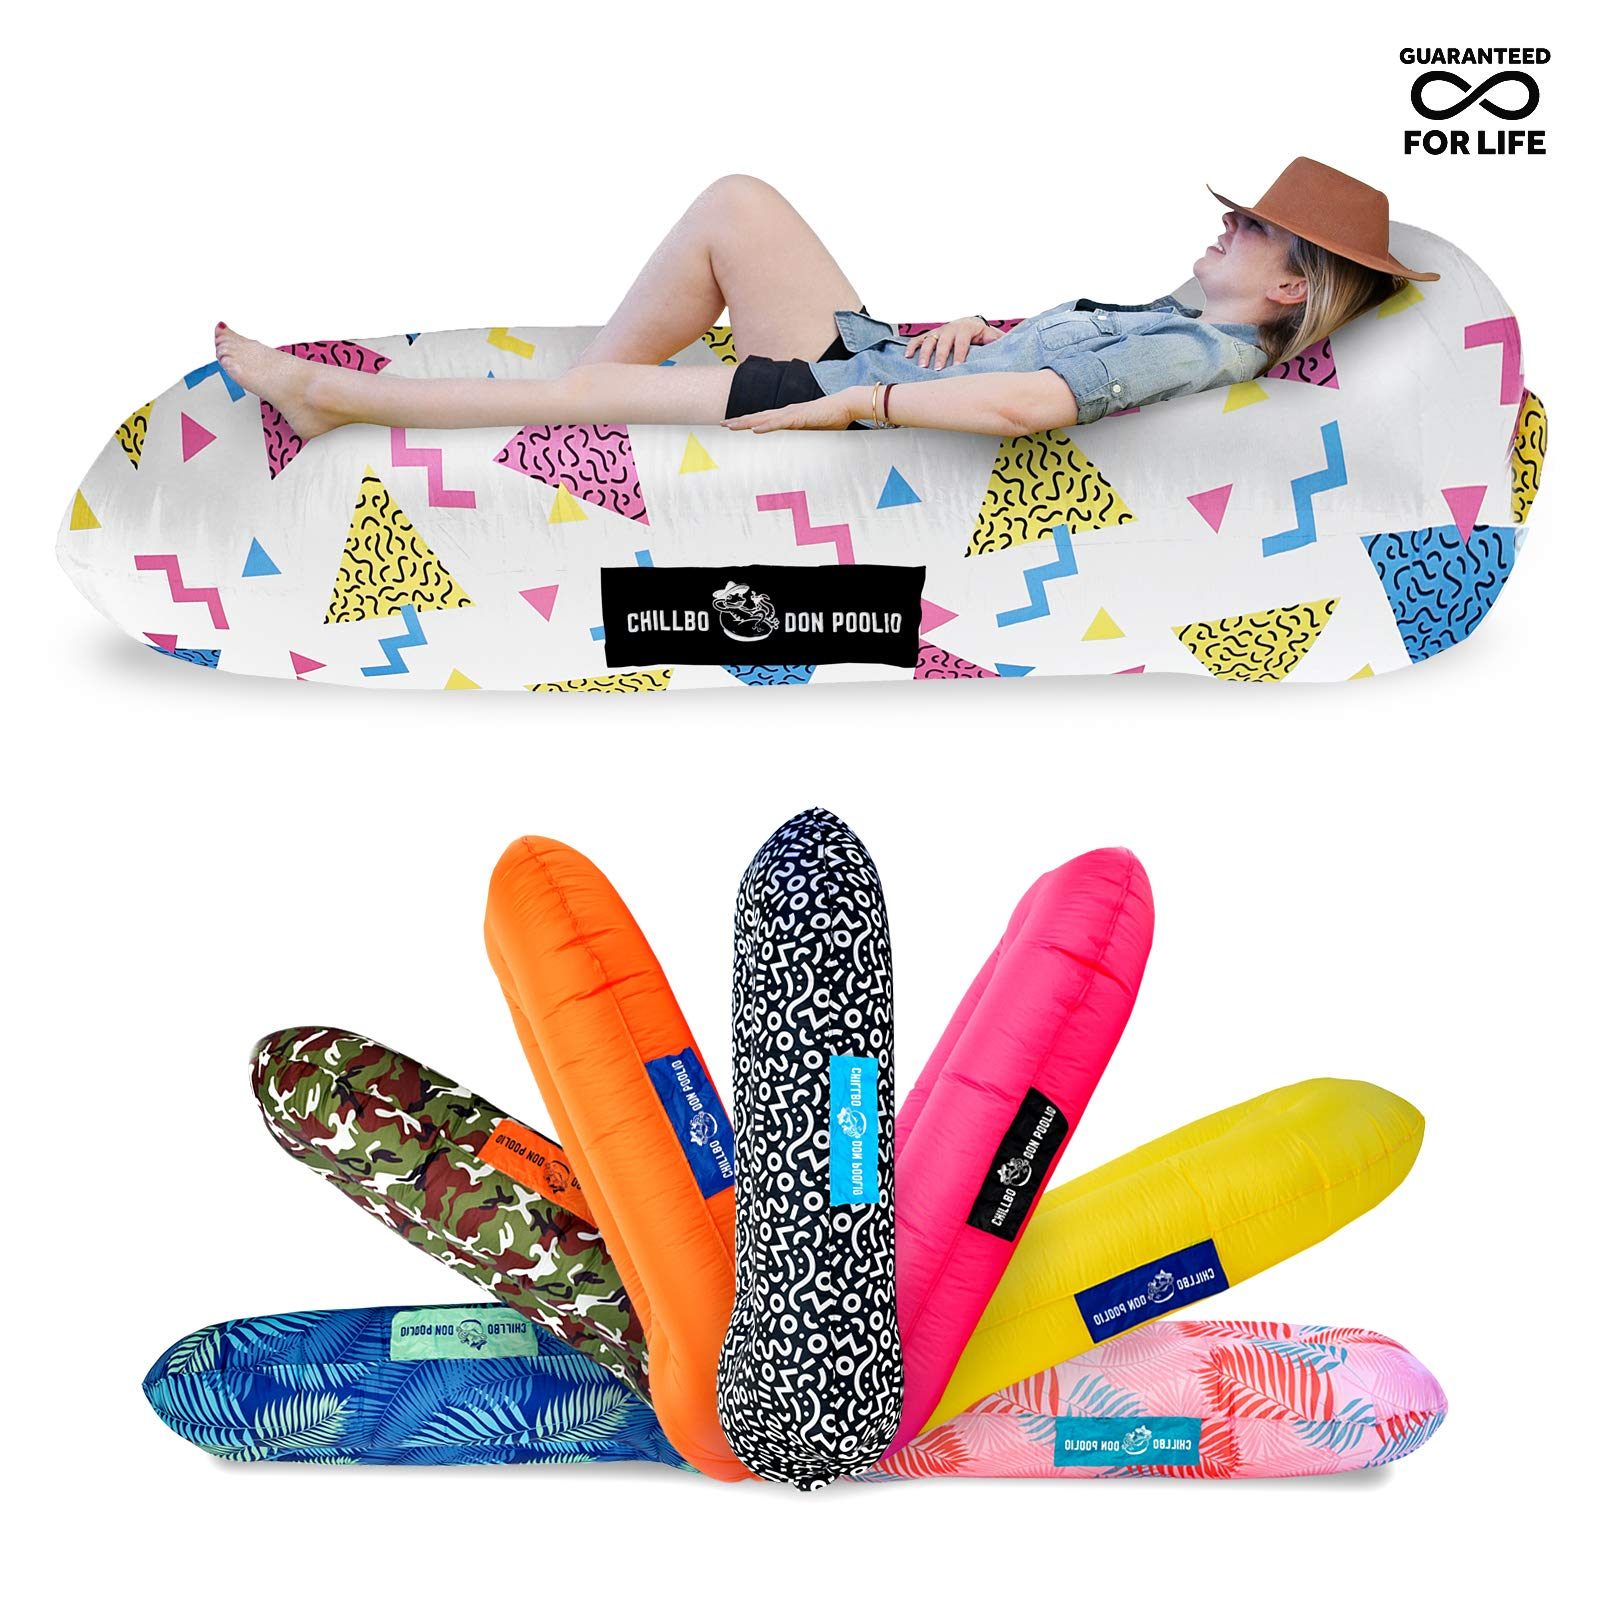 Chillbo Don POOLIO Pool Floats for Adults - Cool Patterns, Inflatable Sofa & Kids Hammock - Best Camping Gear for River Floats Hammock Chair & Raft for Beach (Nineties Fresh Prints White)